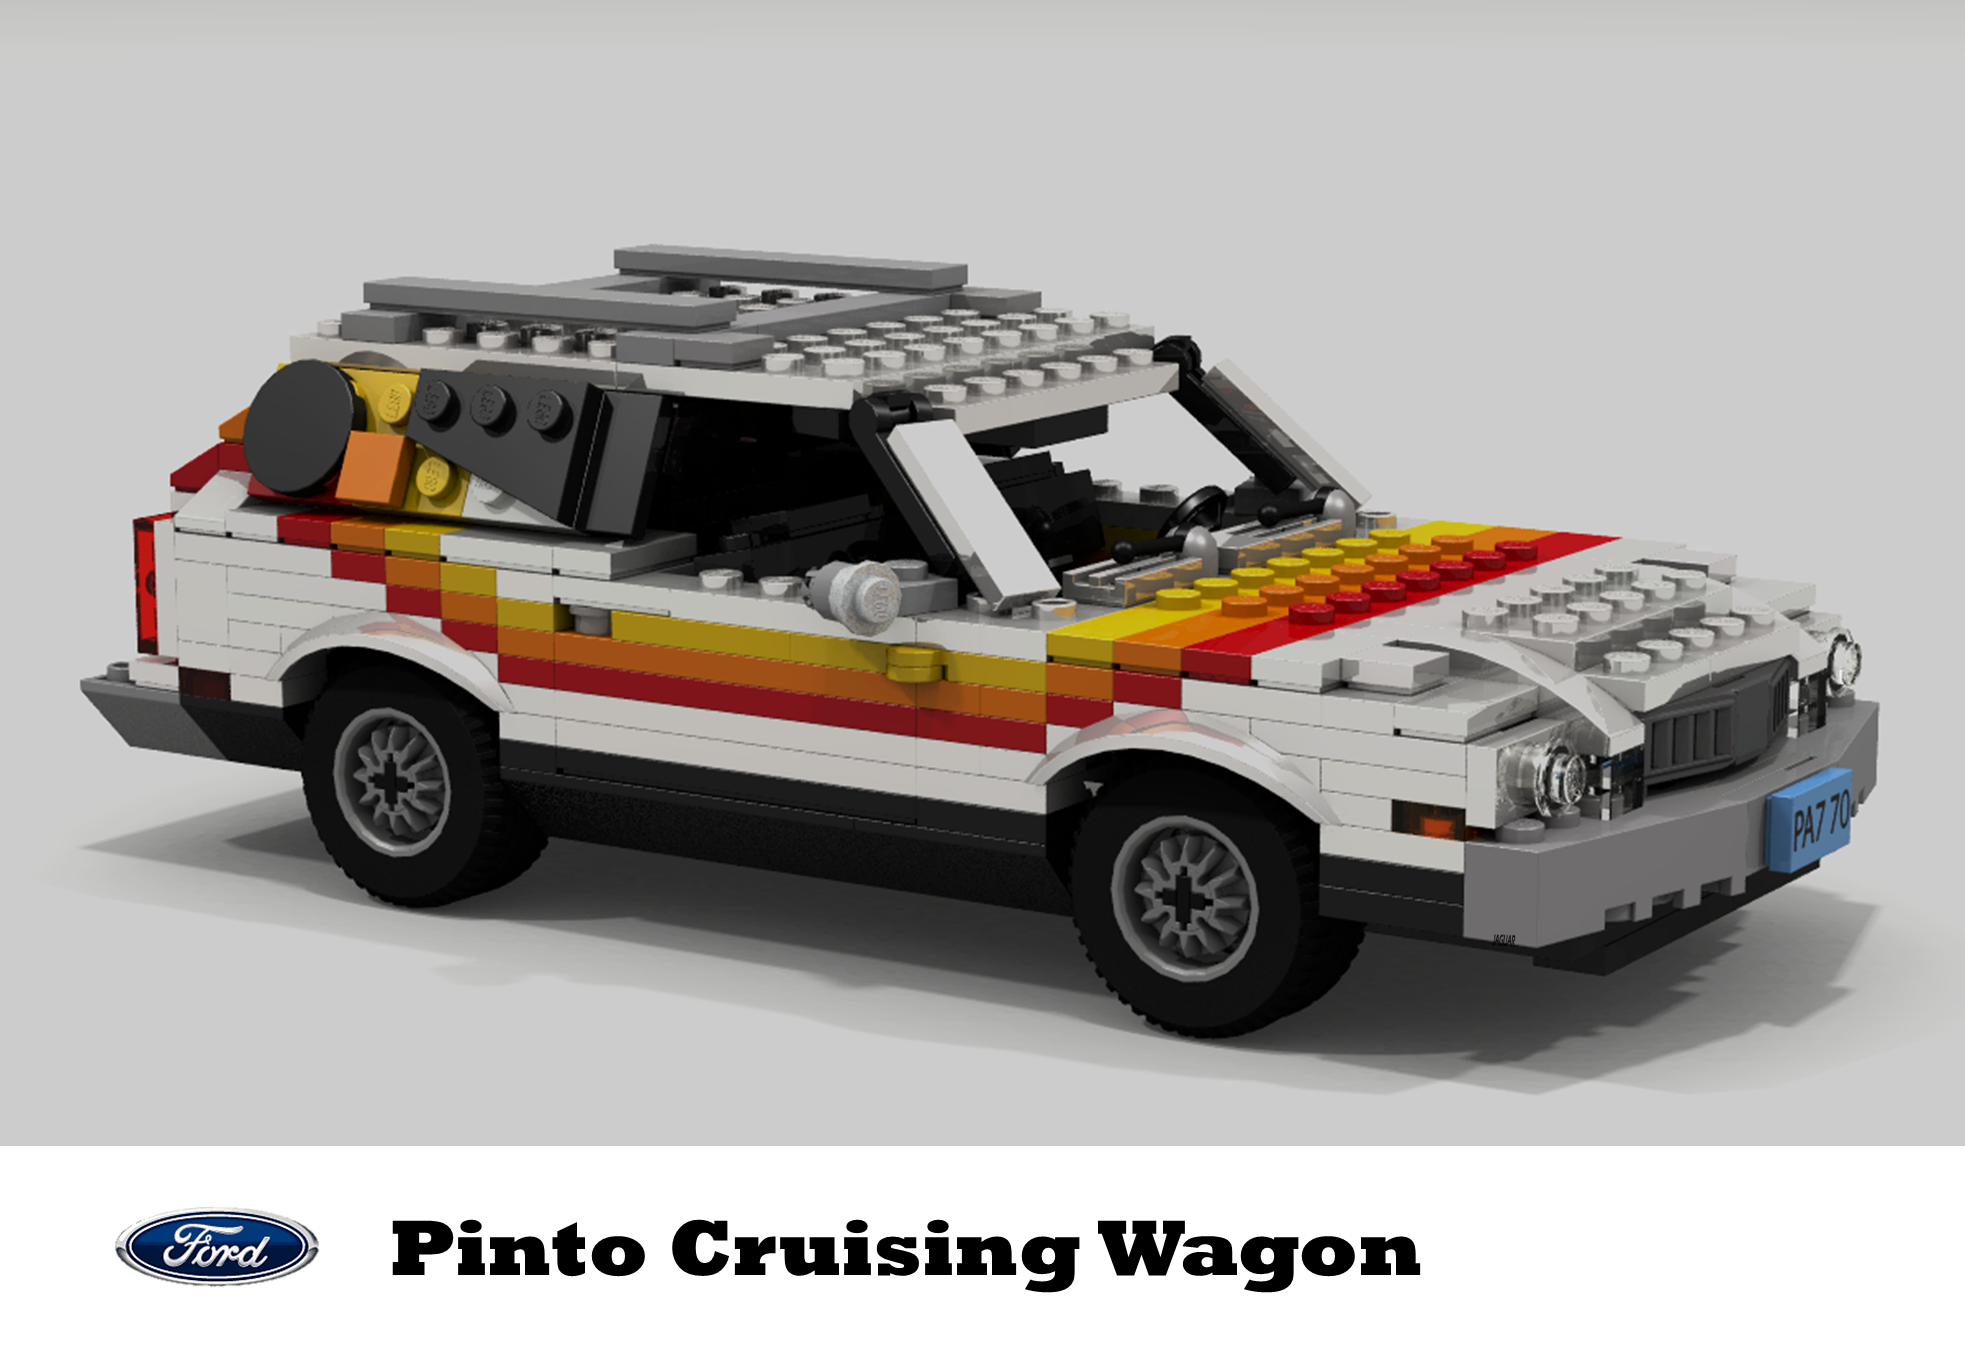 ford_pinto_cruising_wagon_01.png